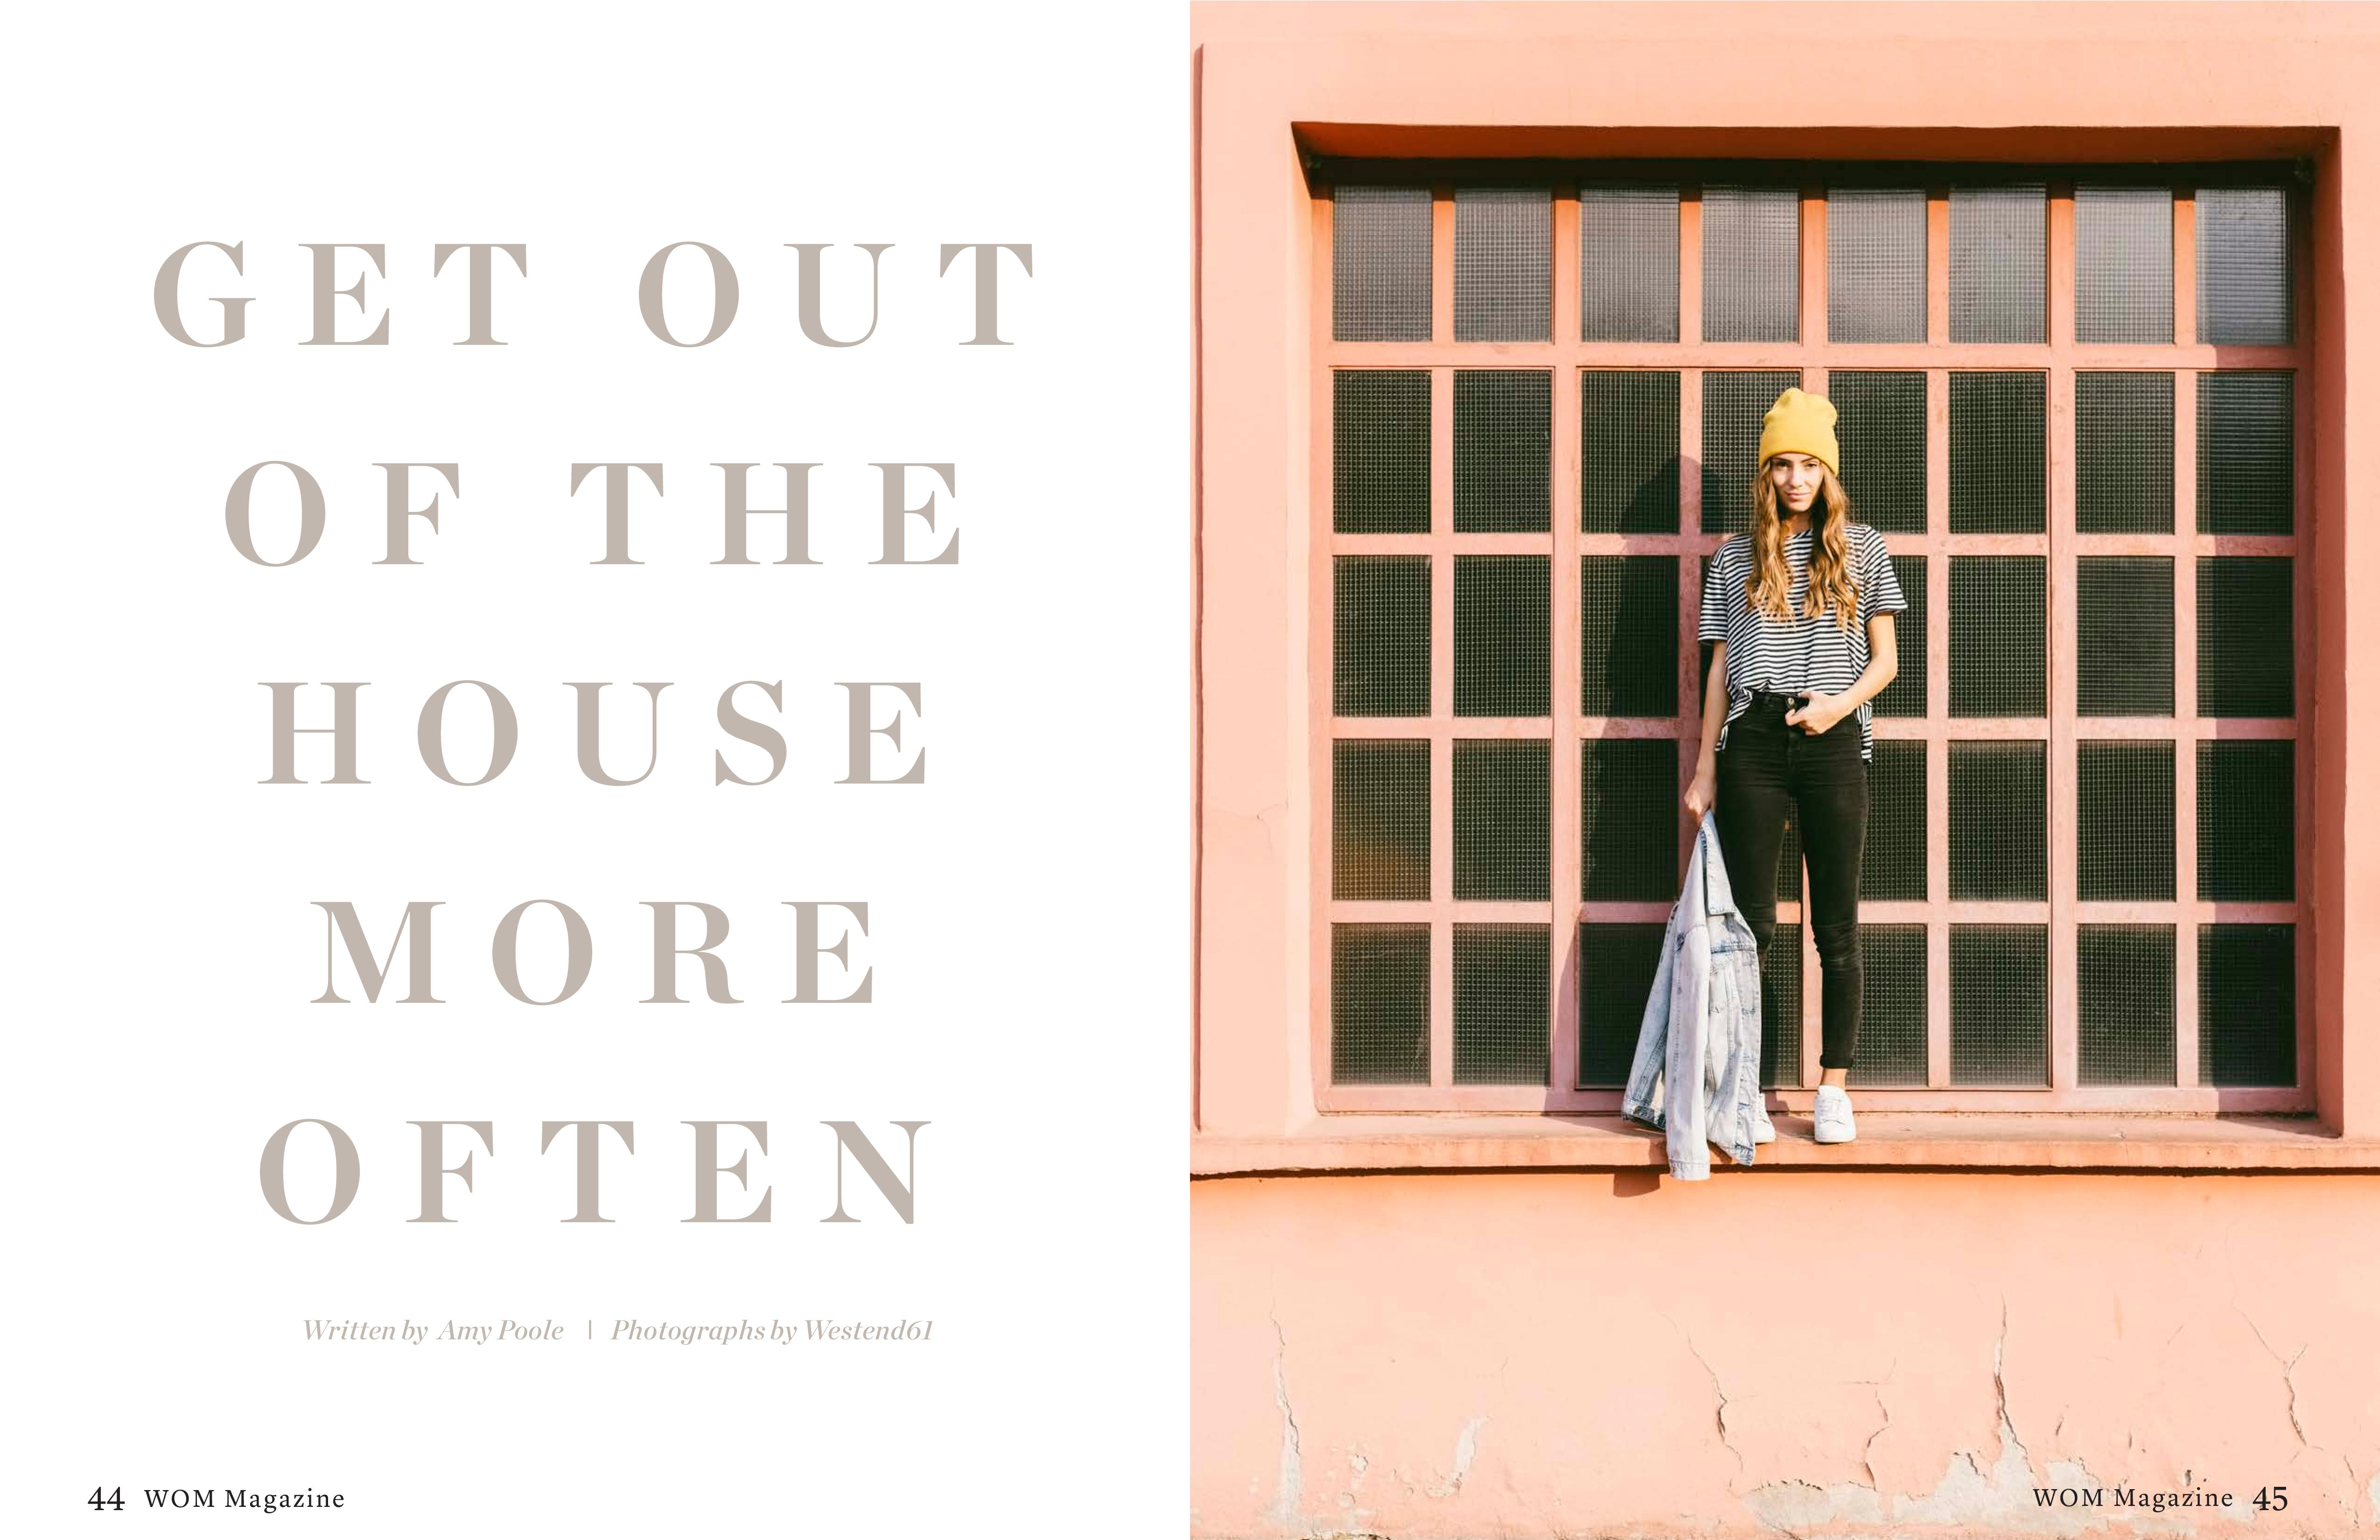 Wondrous Get Out Of The House More Often Wom Magazine Download Free Architecture Designs Rallybritishbridgeorg